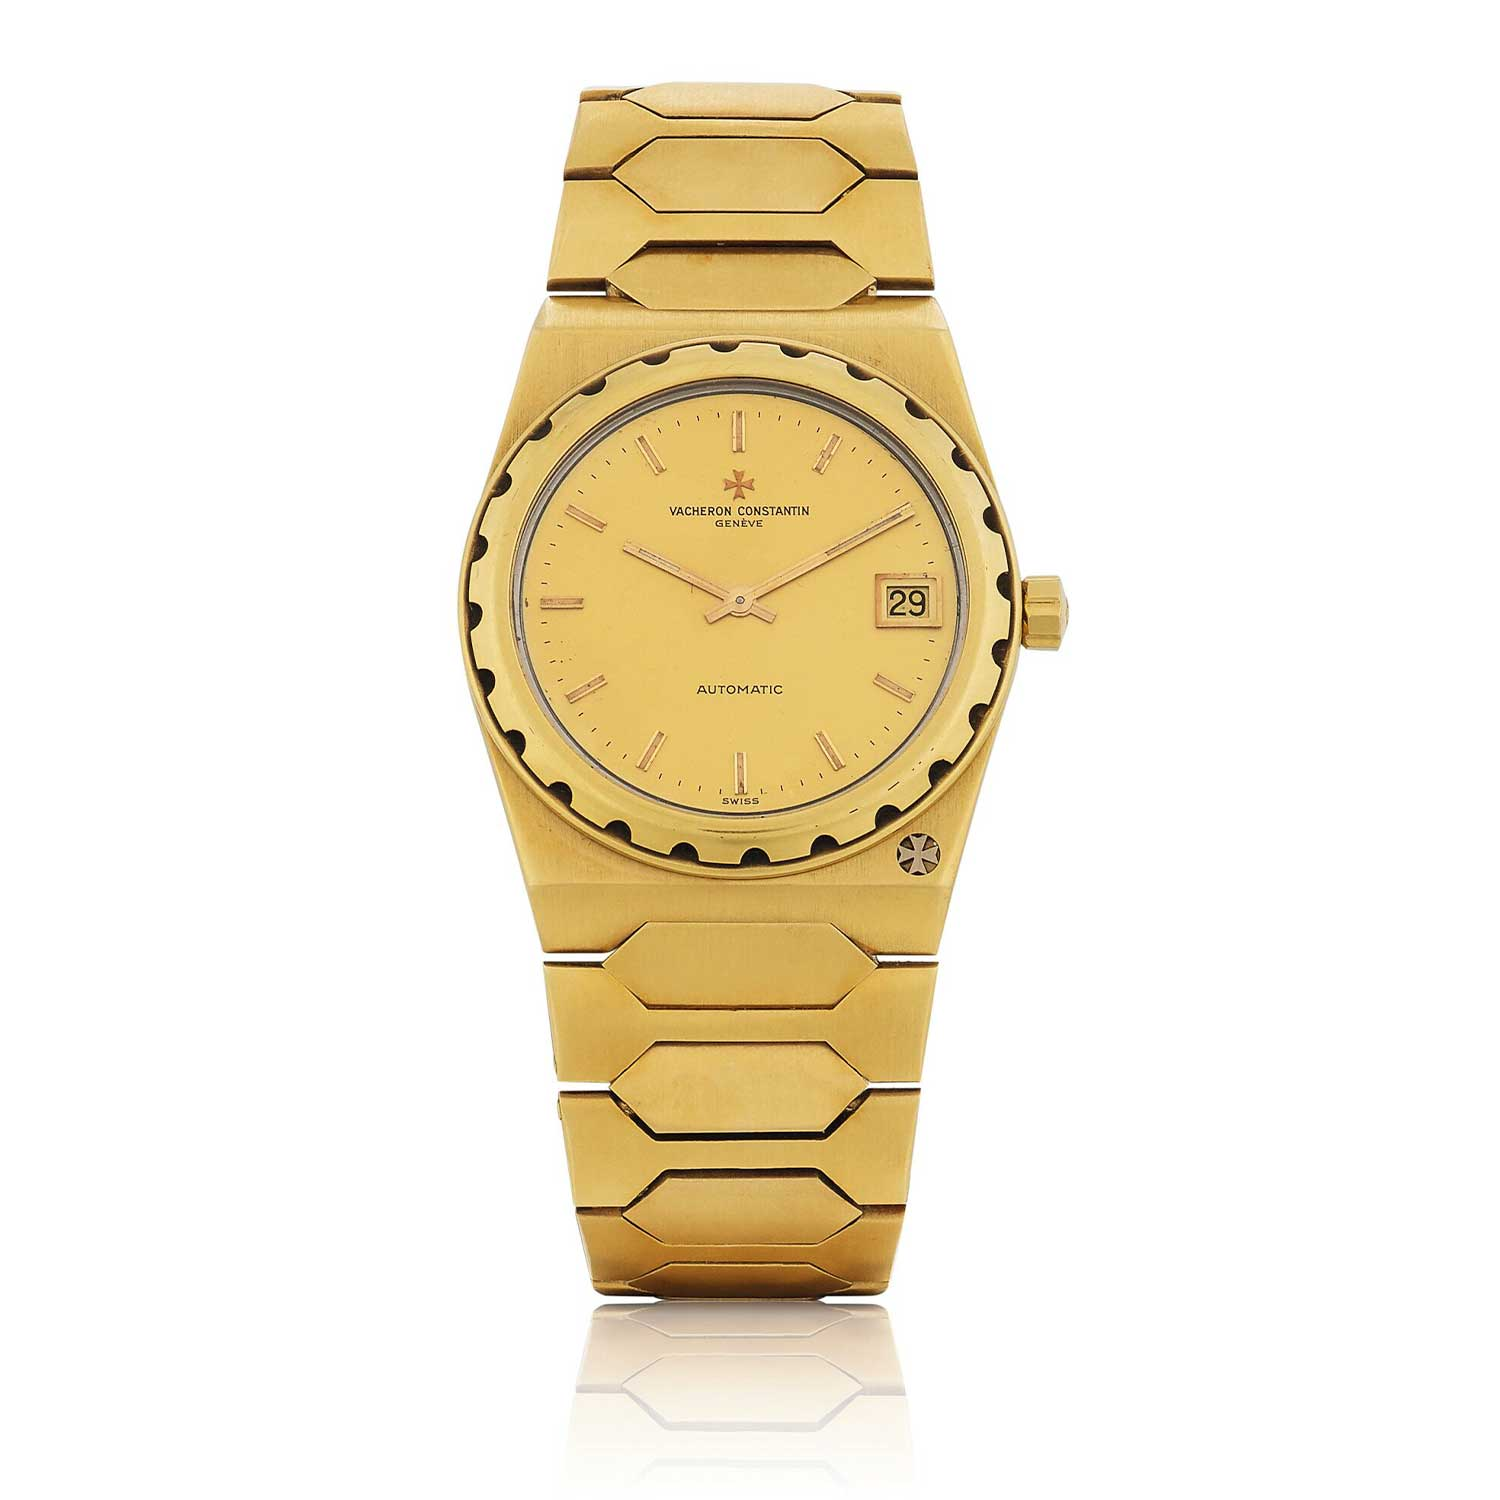 Vacheron Constantin's 222, ref. 44018, designed by Jörg Hysek was also available in yellow gold (Image: sothebys.com)